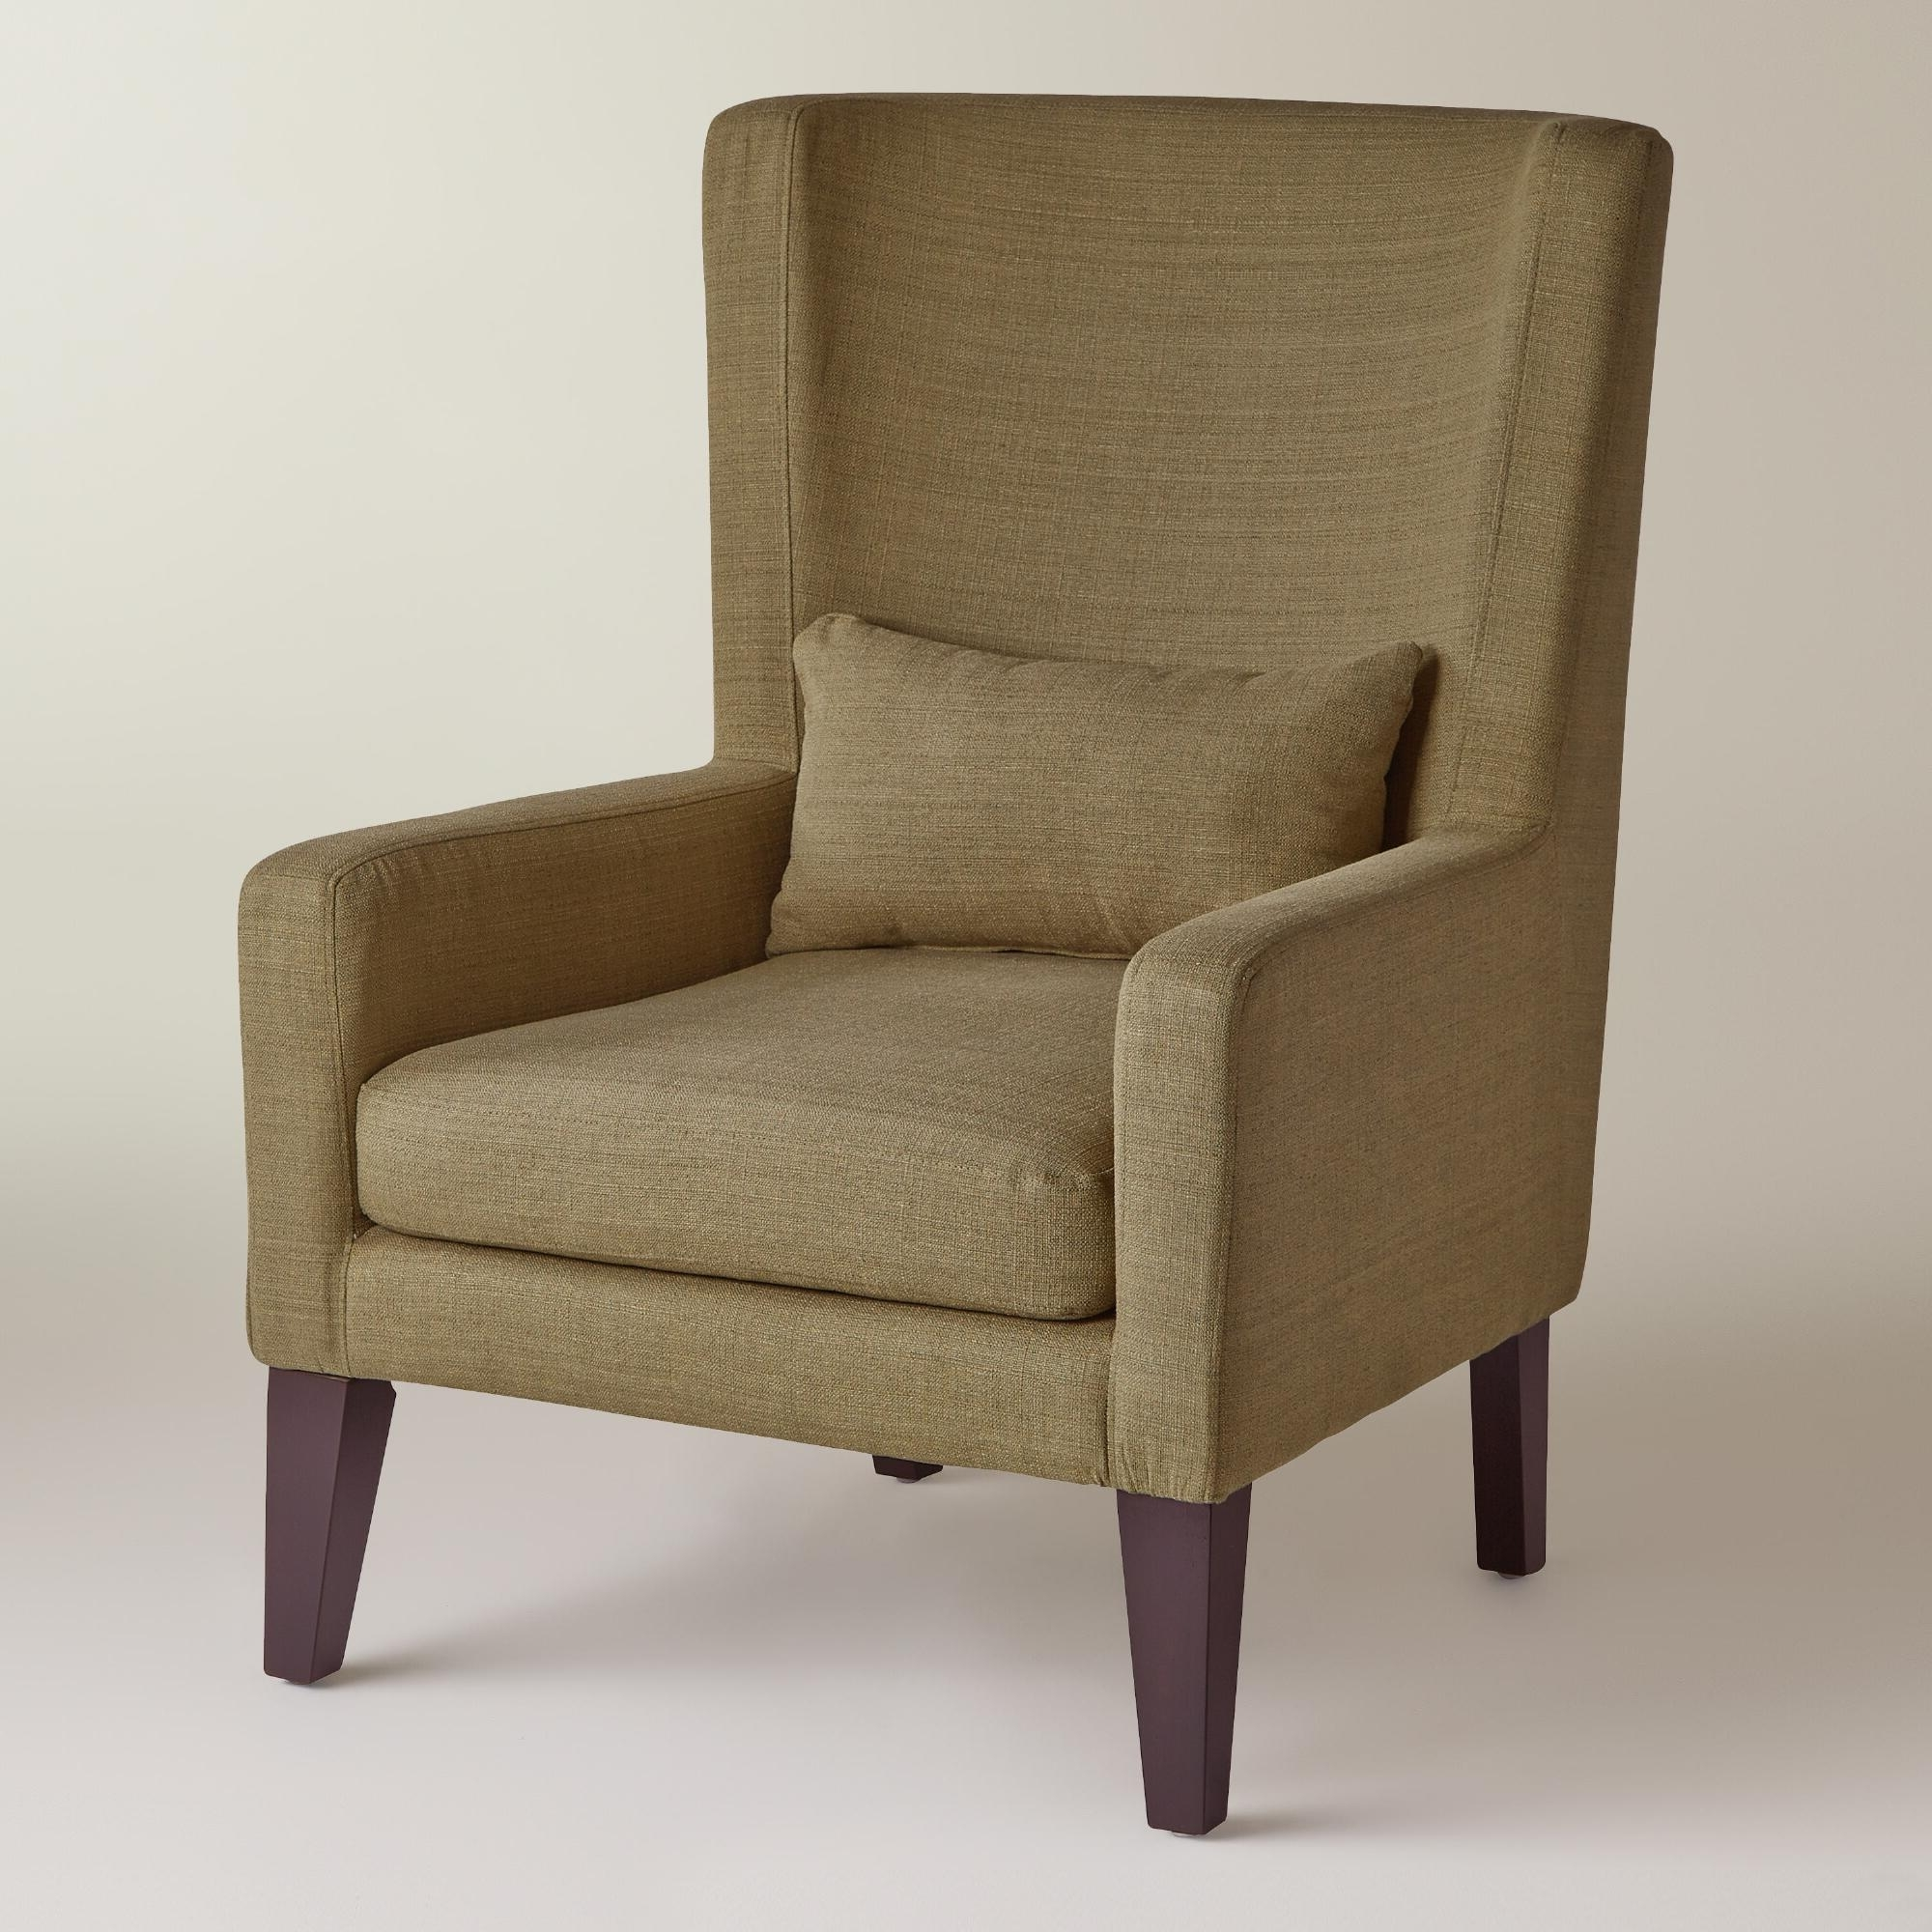 Green Sofa Chairs Intended For Widely Used Furniture: Amazing Chairs For Living Room Hayneedle Outdoor (View 14 of 15)